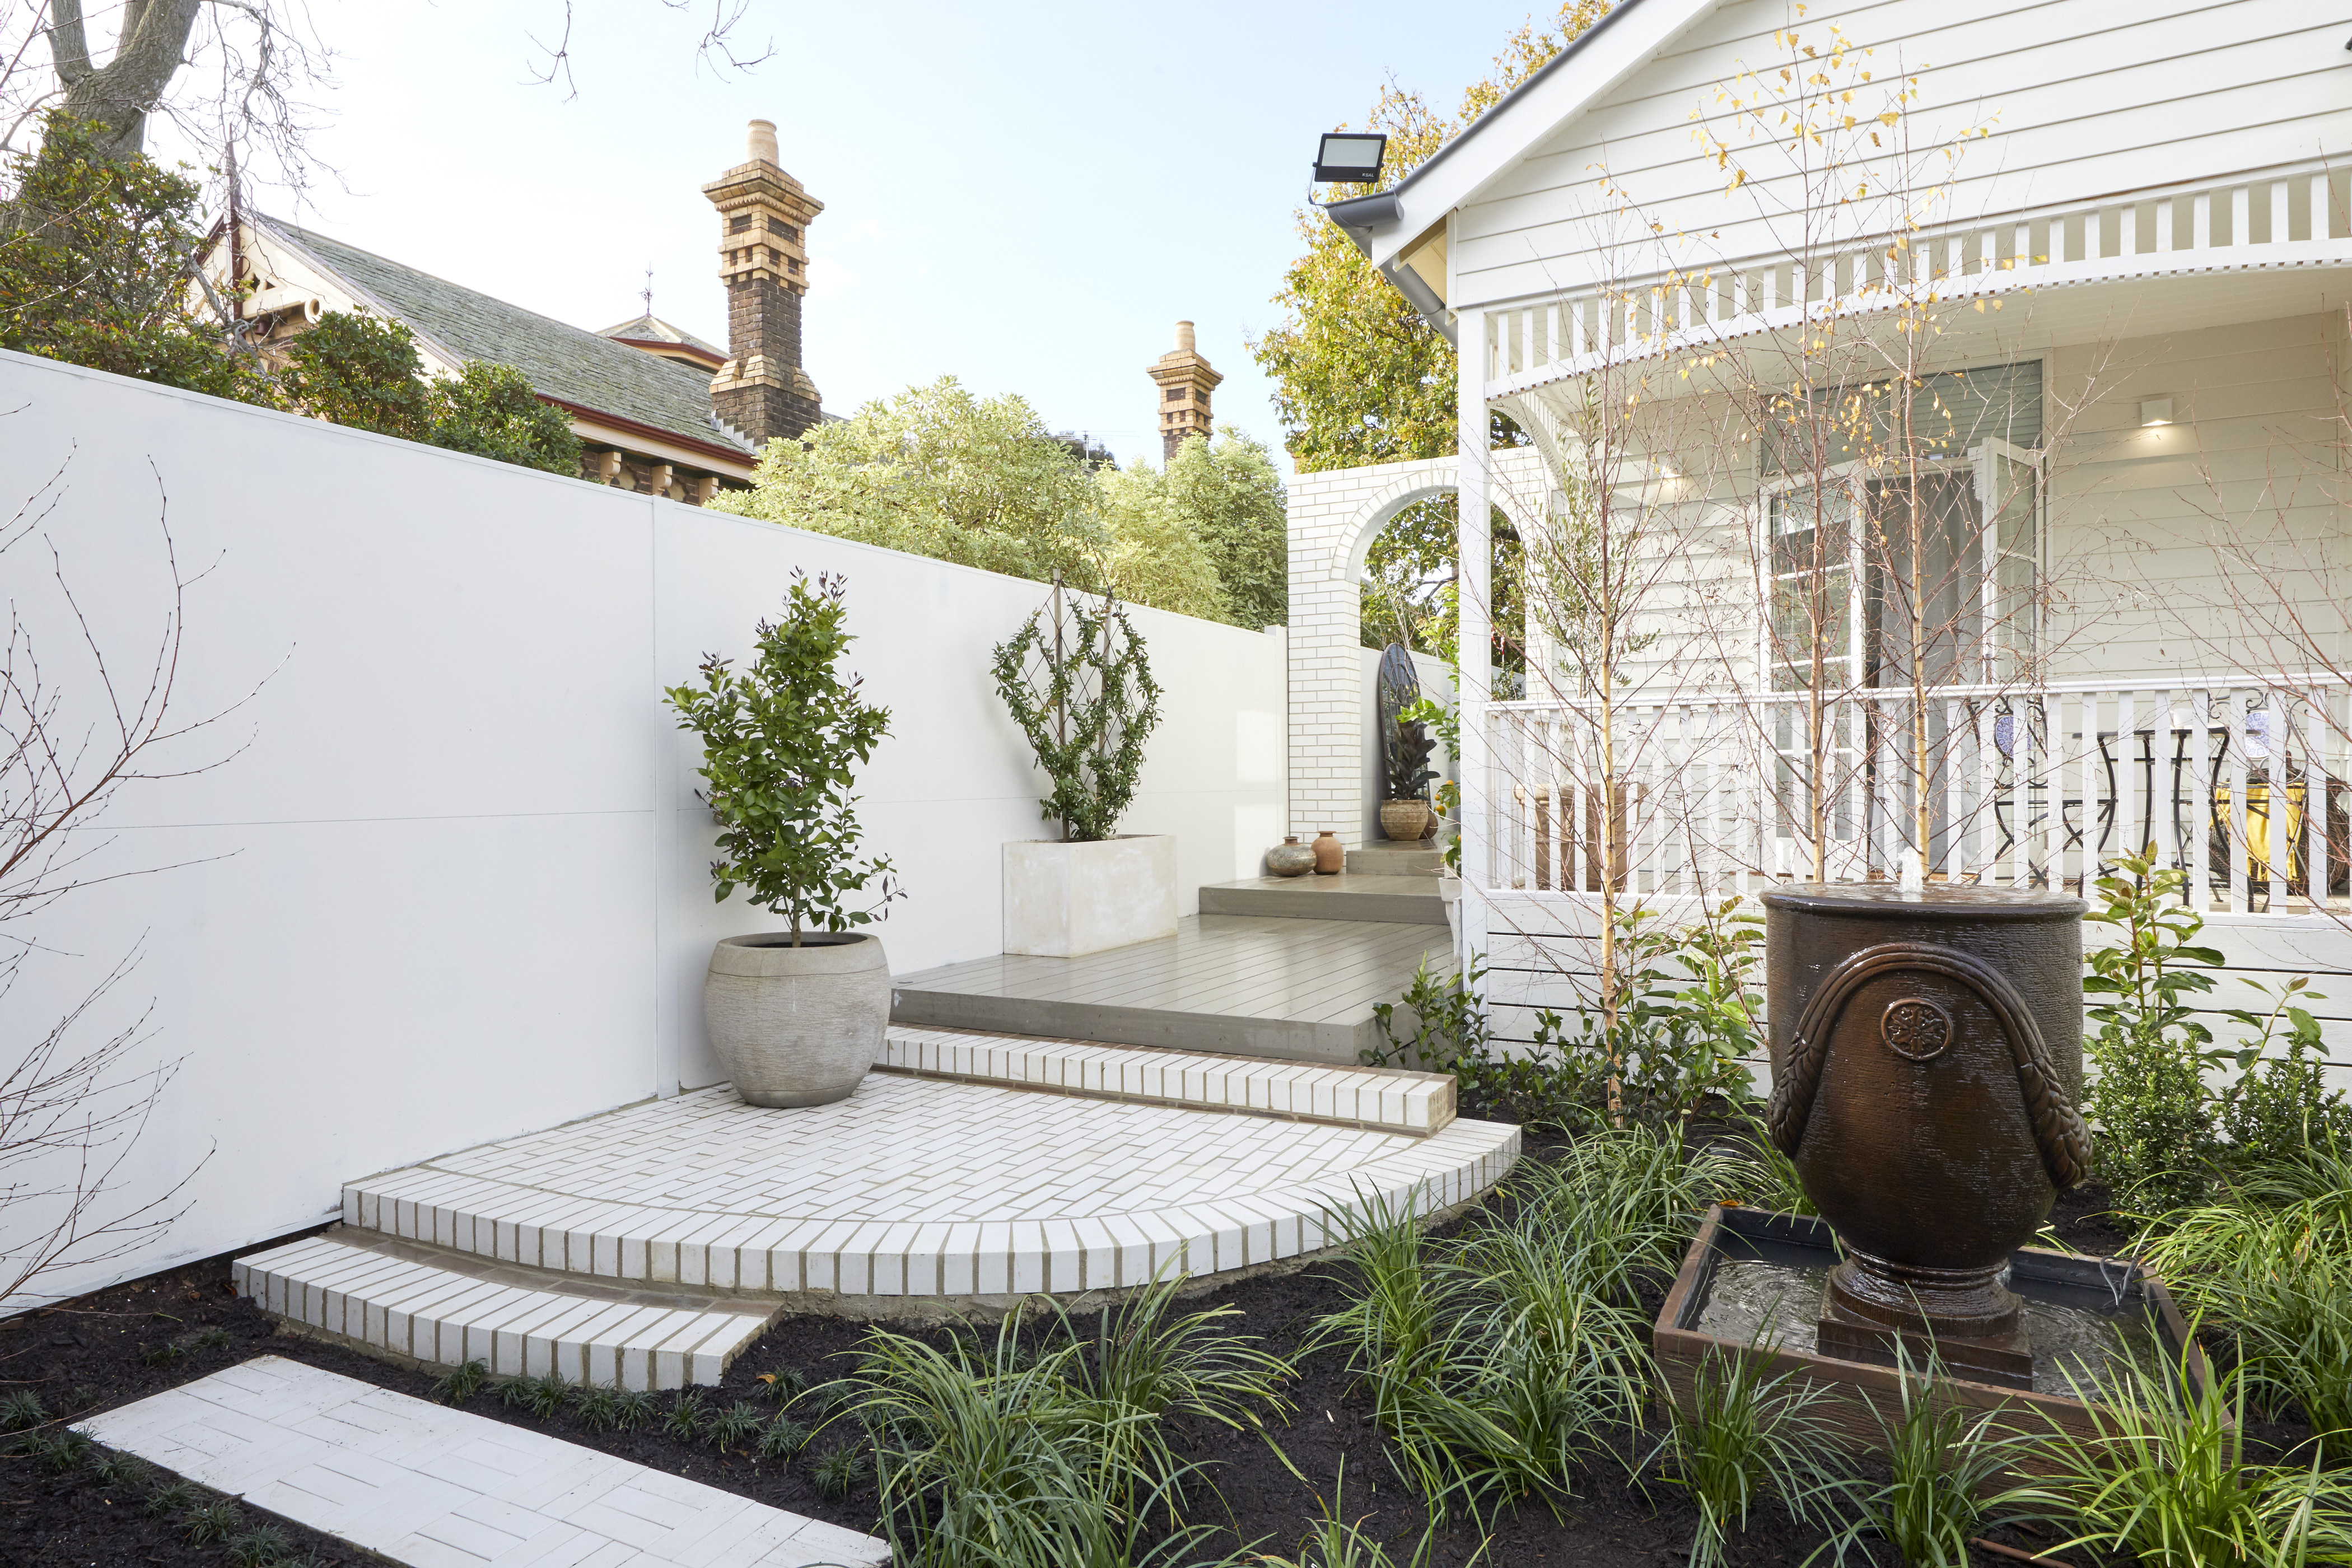 Cottagecore Design Trend - The Block Front Garden - Harry and Tash